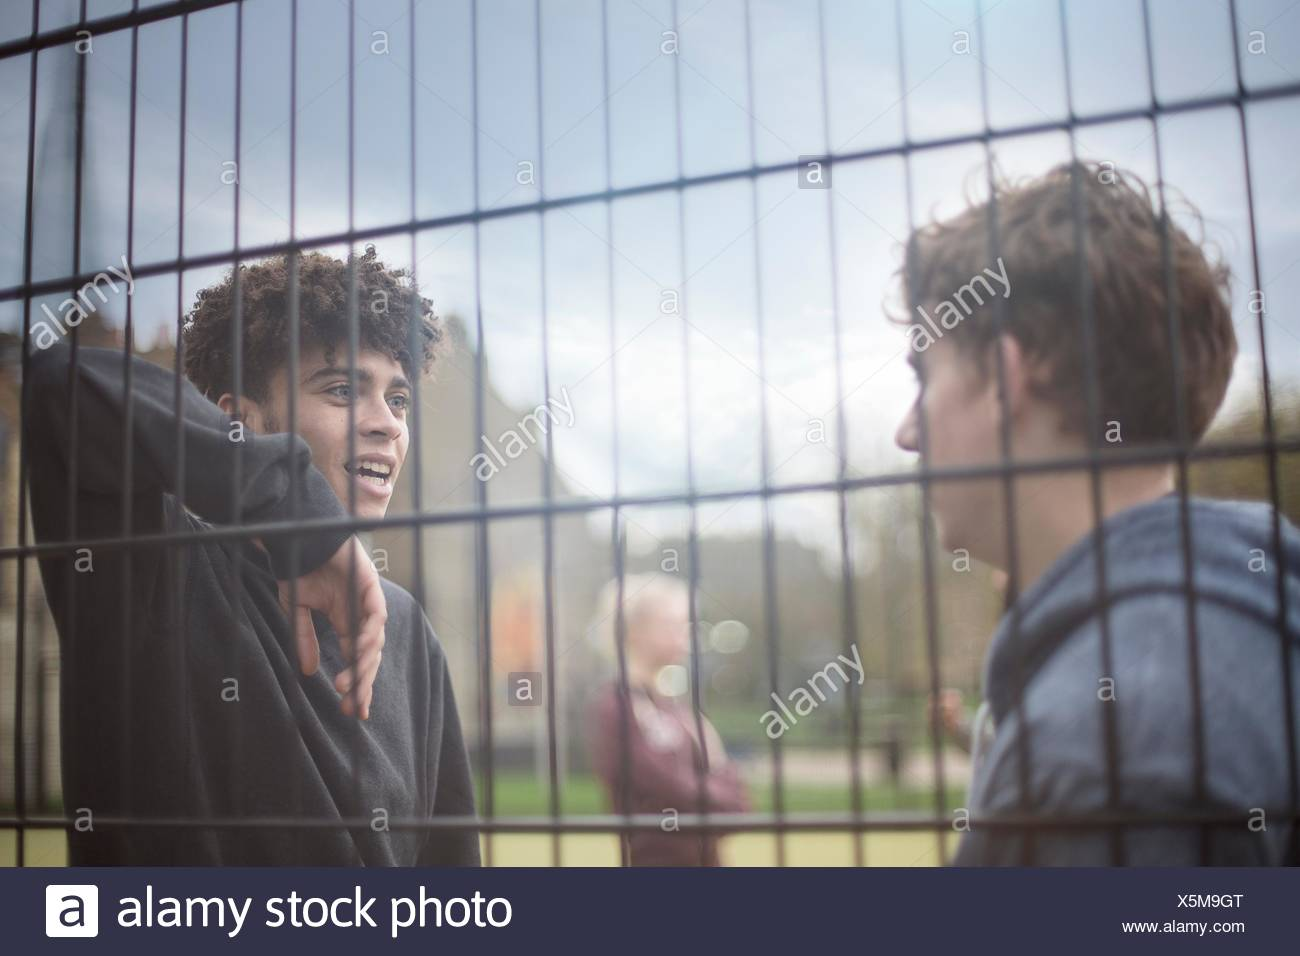 Two young men leaning against fence, talking - Stock Image